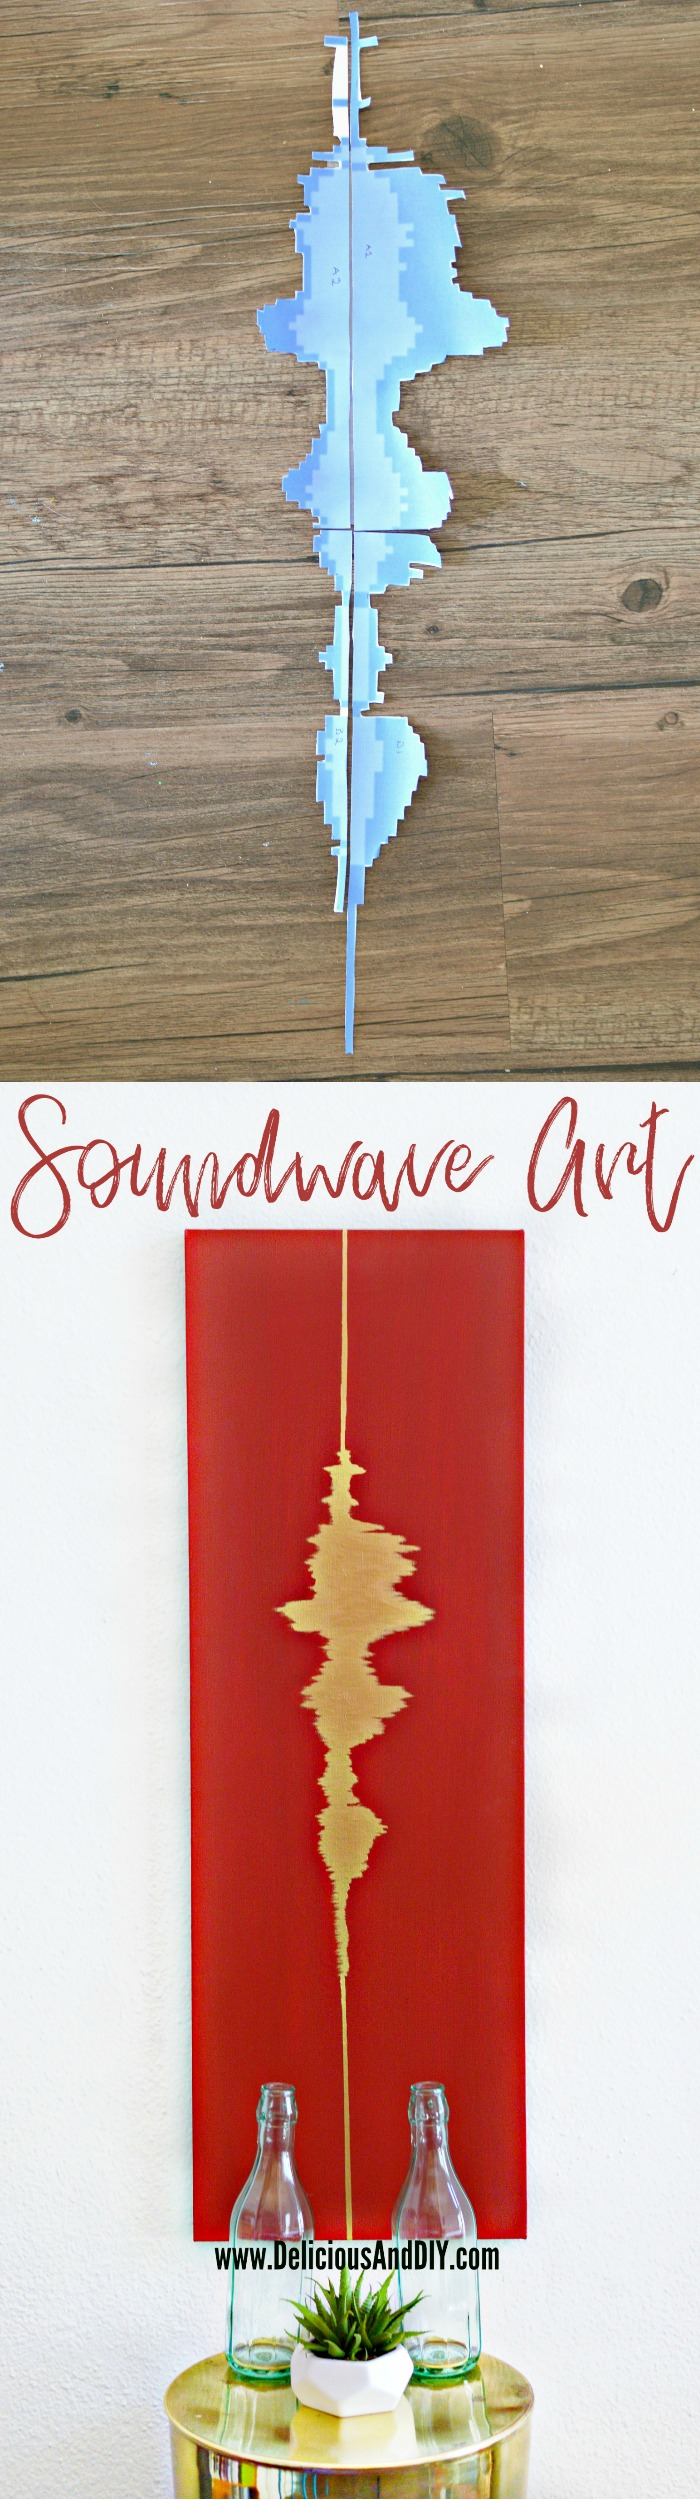 Paint a personal message for your love one with this fun DIY Sound wave Wall Art  Painted Canvas  Creative Gift Ideas  Valentine Day Personalized Gift Ideas  Gallery Wall Idea  Canvas Art  DIY Handprinted Canvas  Red Wall Art Idea  Home Decor